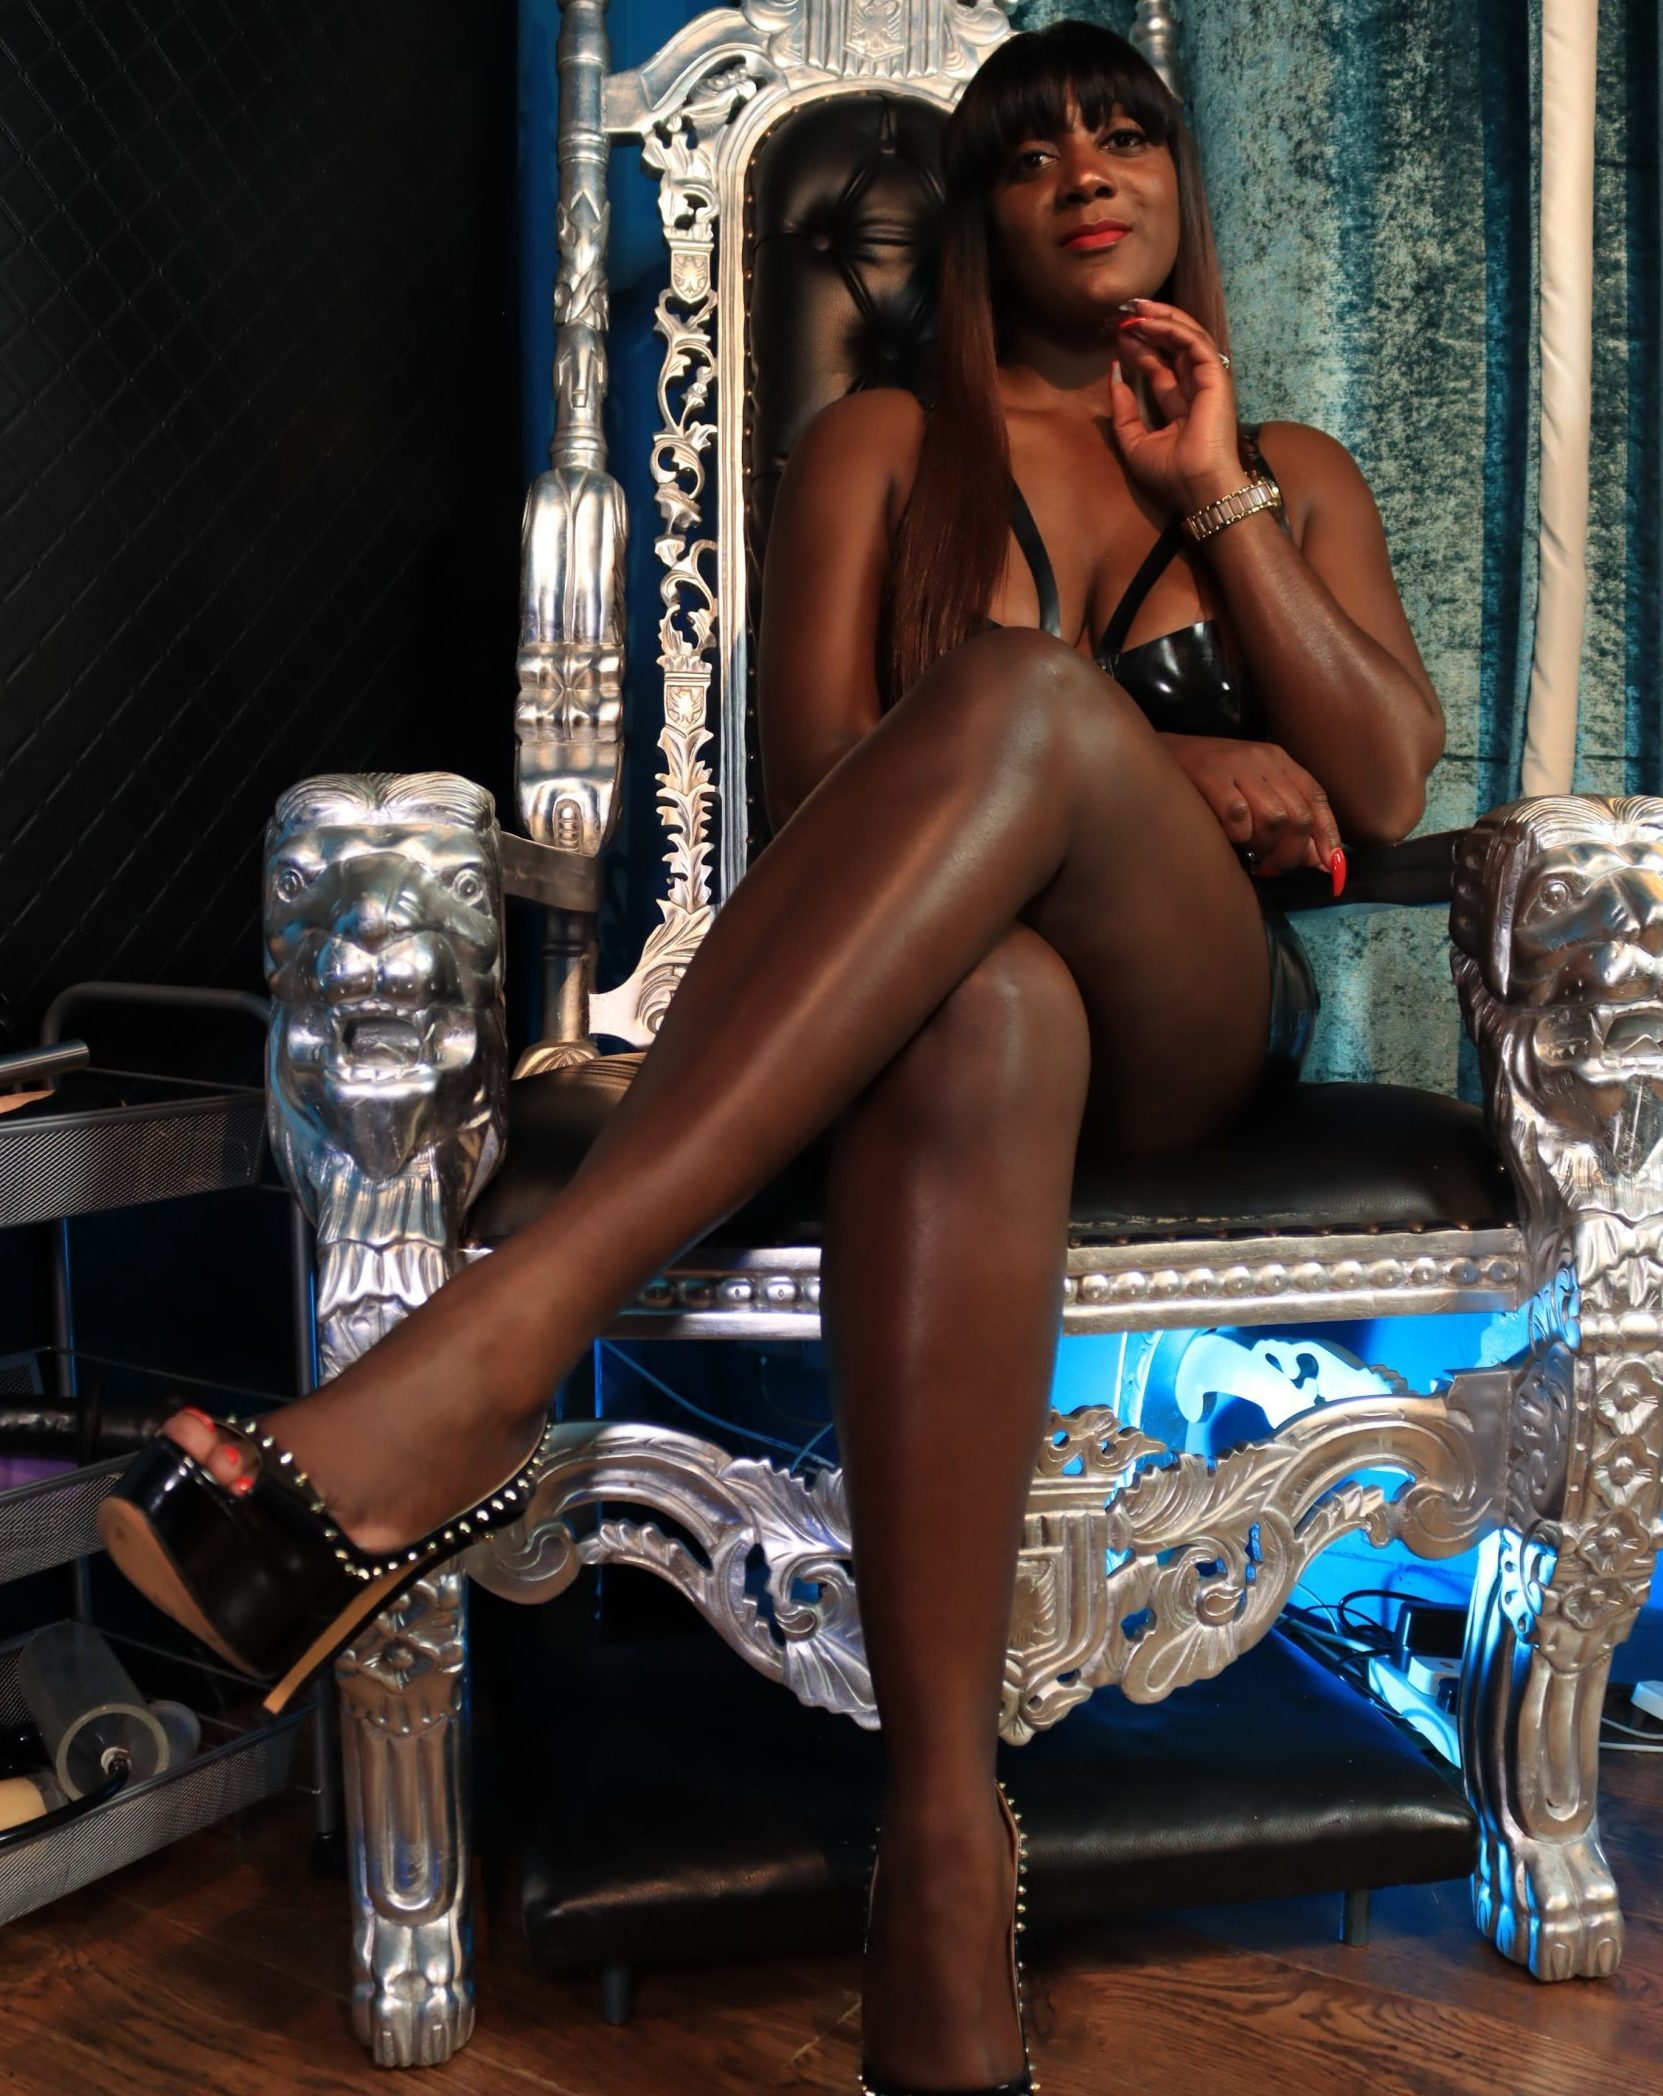 This is the official website ofMistress Lorraine